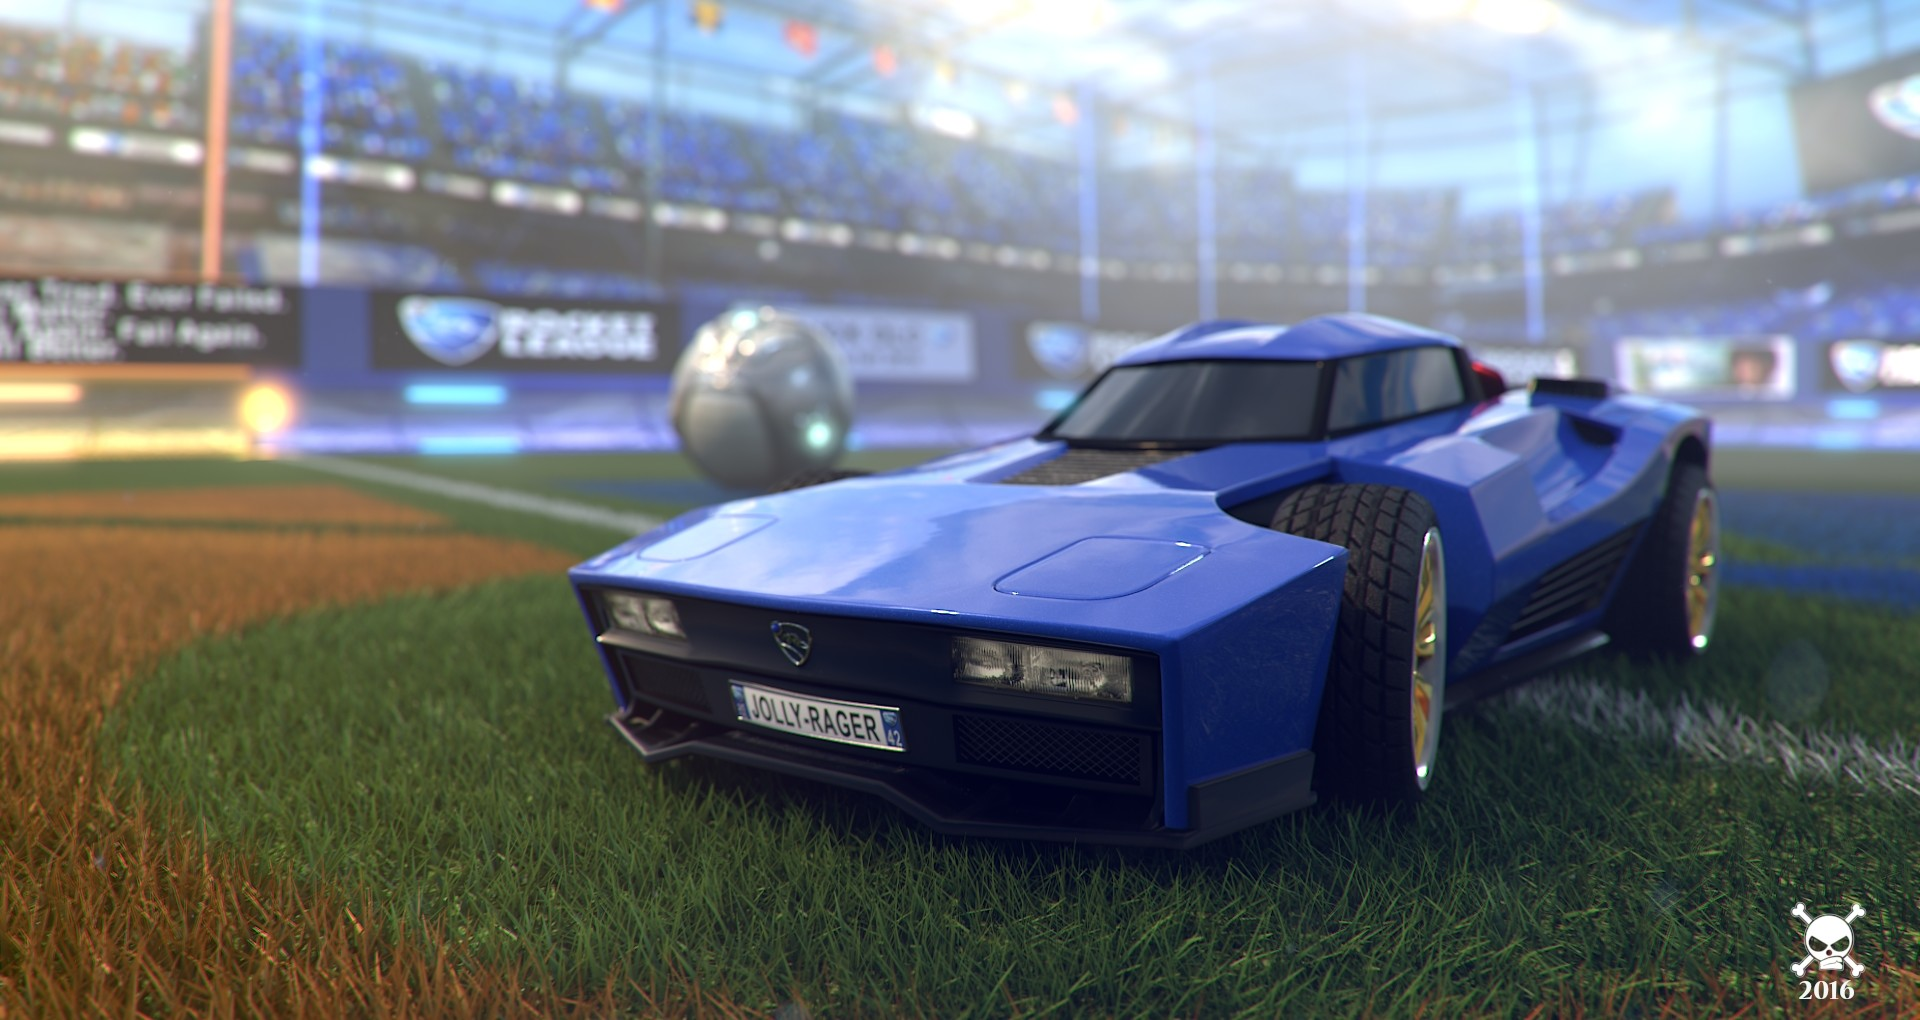 Best Rocket League Car - Detailed Car Stats & Guide to Car Selection